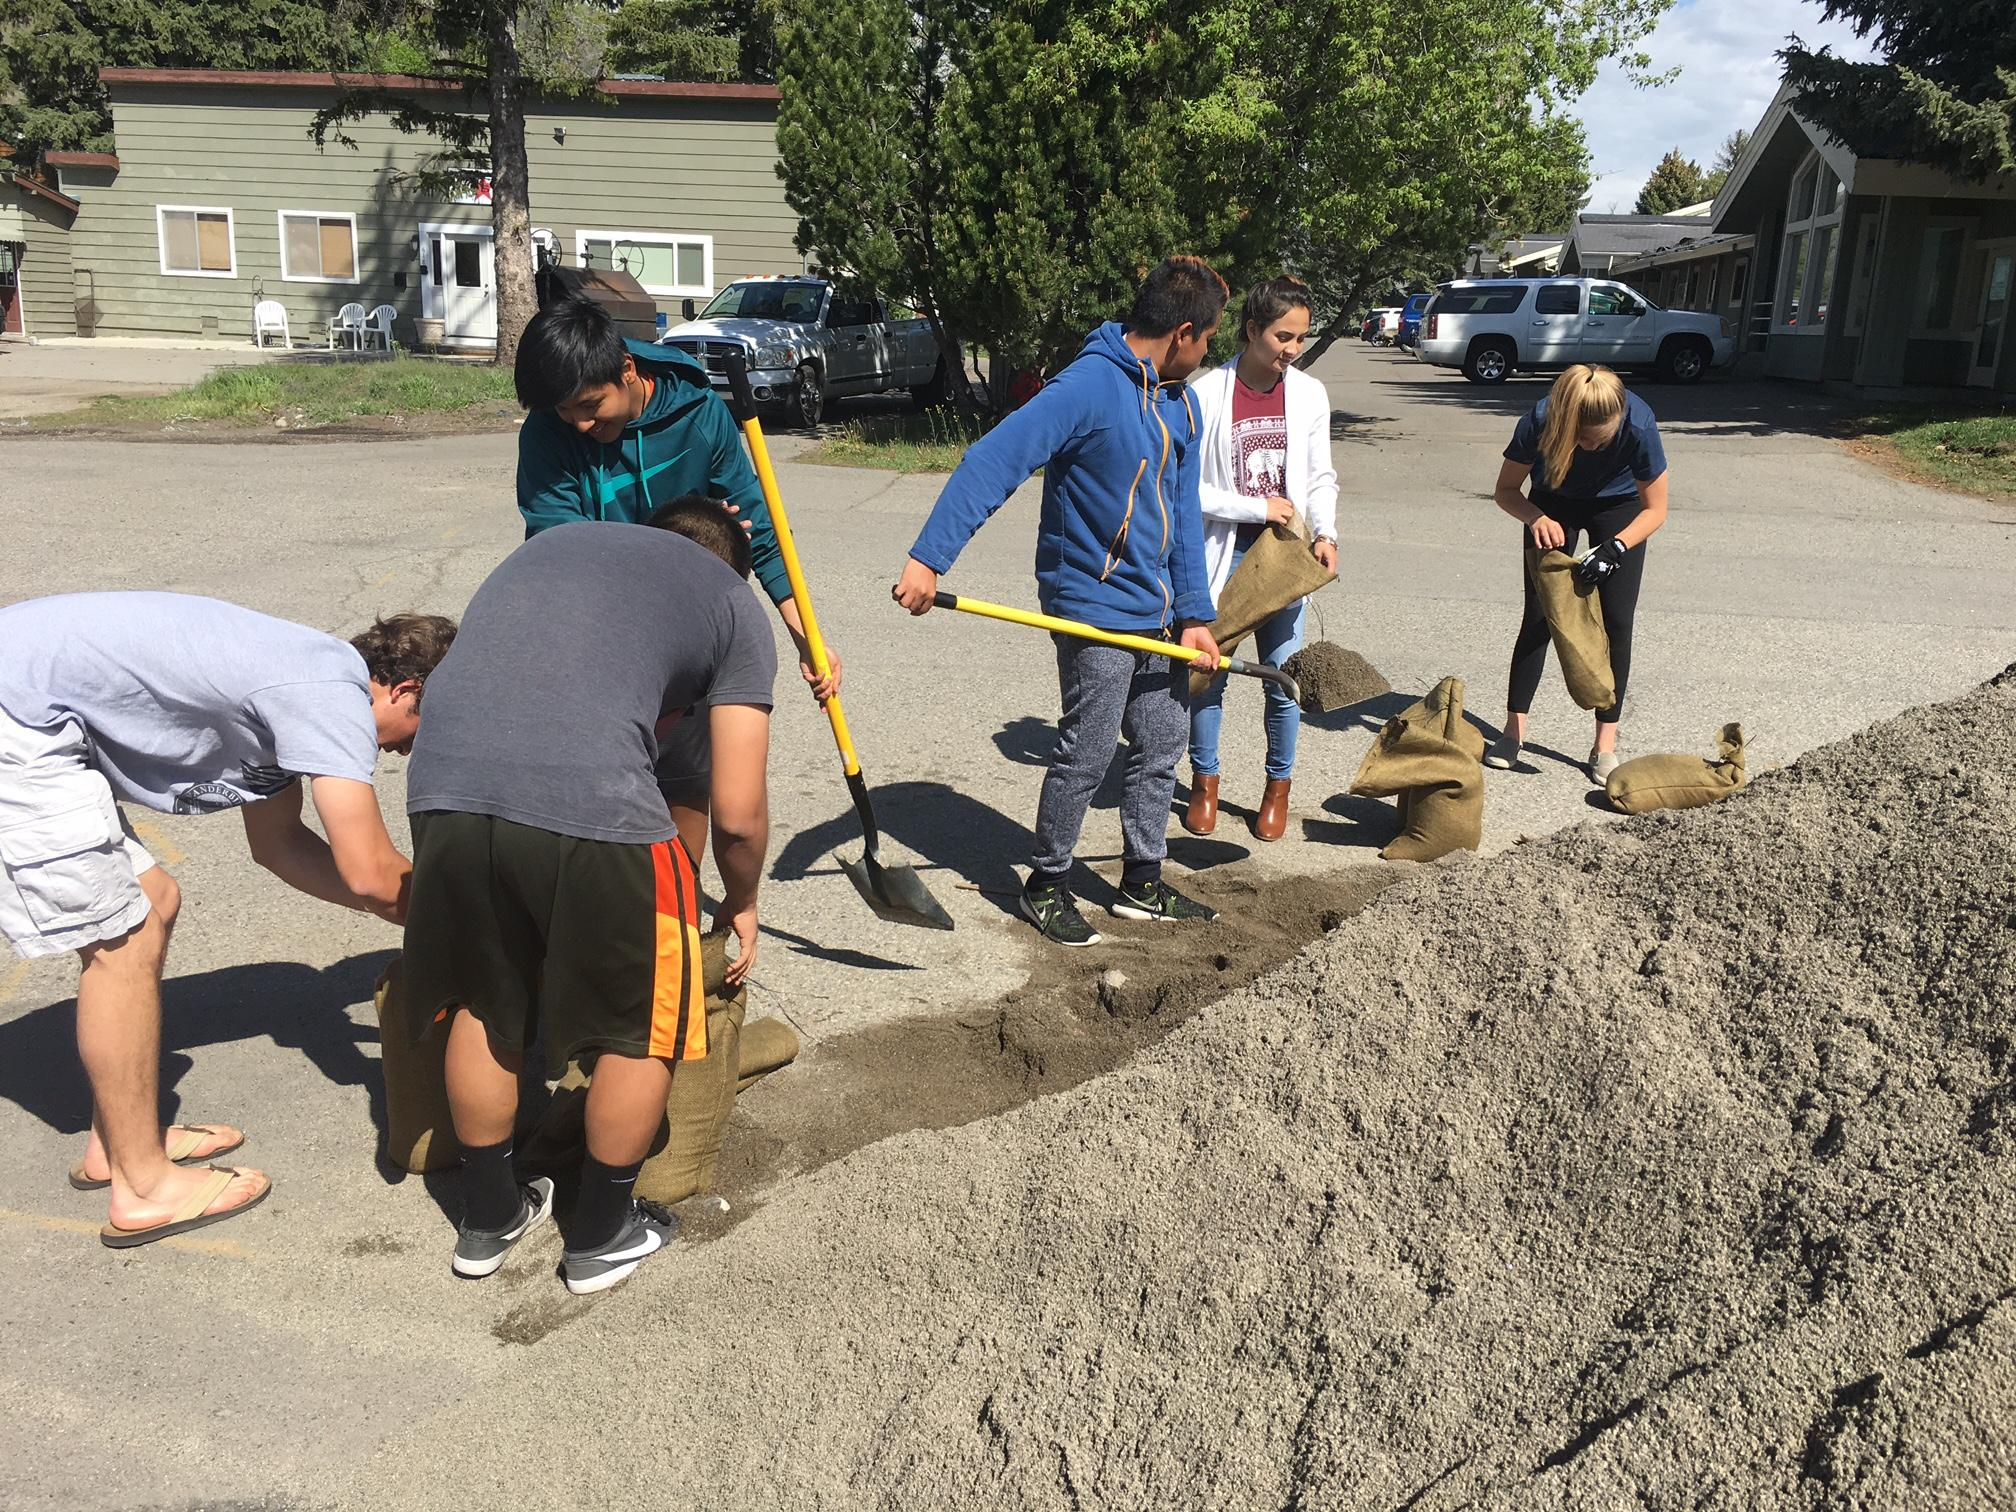 Folks in Hailey, Idaho are hard at work filling sandbags and prepping for the rising floodwaters. Ground water is rising which isn't helping the flooding.